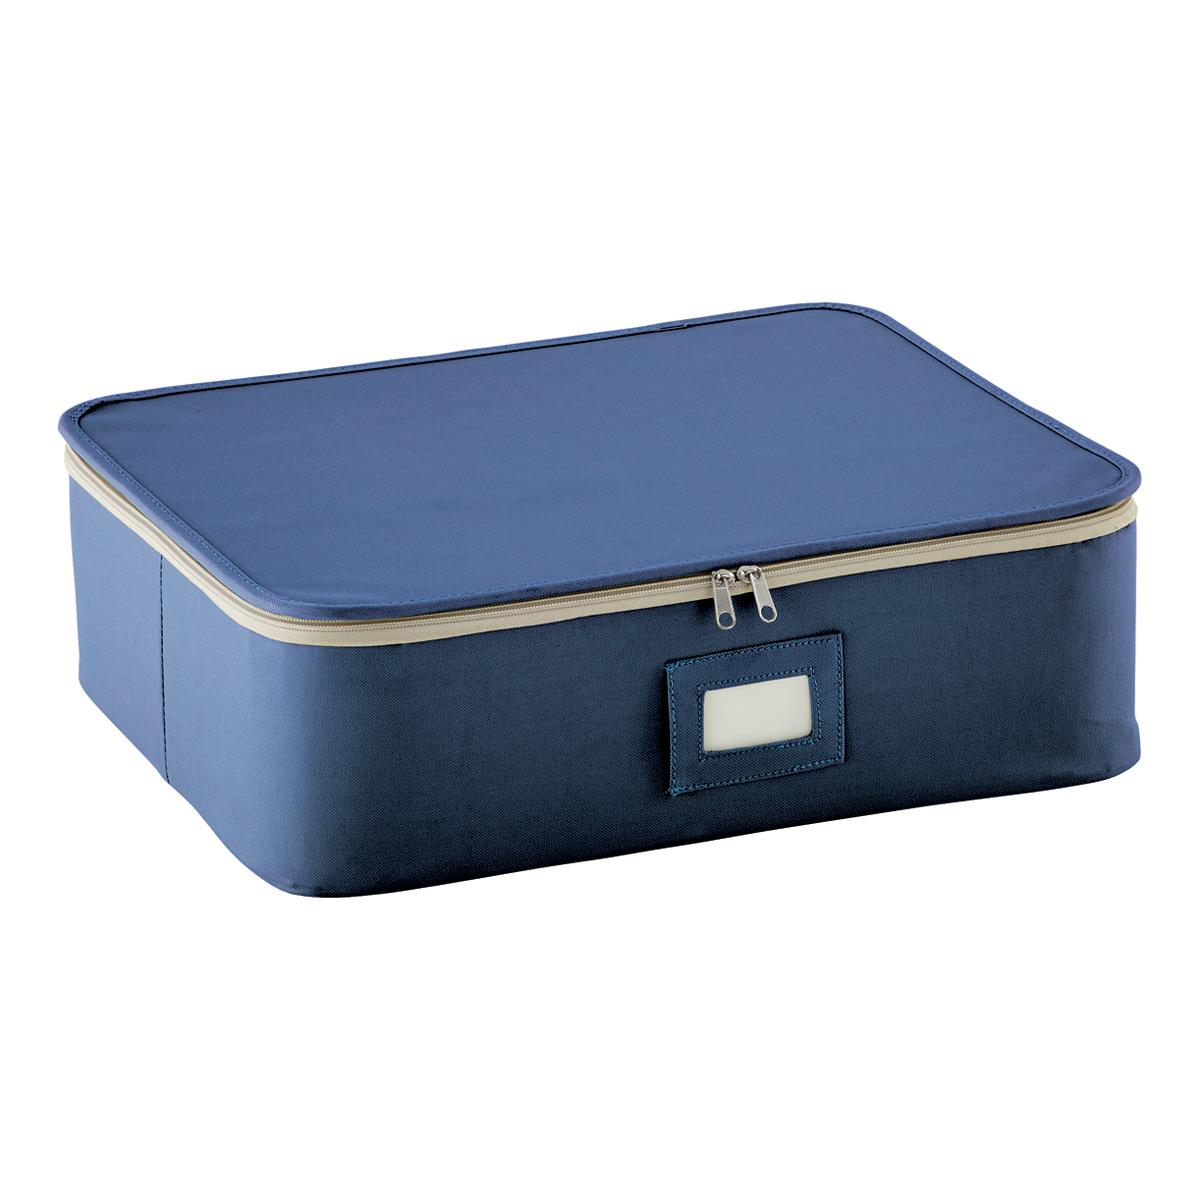 Blue Cup/Mug Storage Case  sc 1 st  The Container Store & Blue Cup/Mug Storage Case | The Container Store